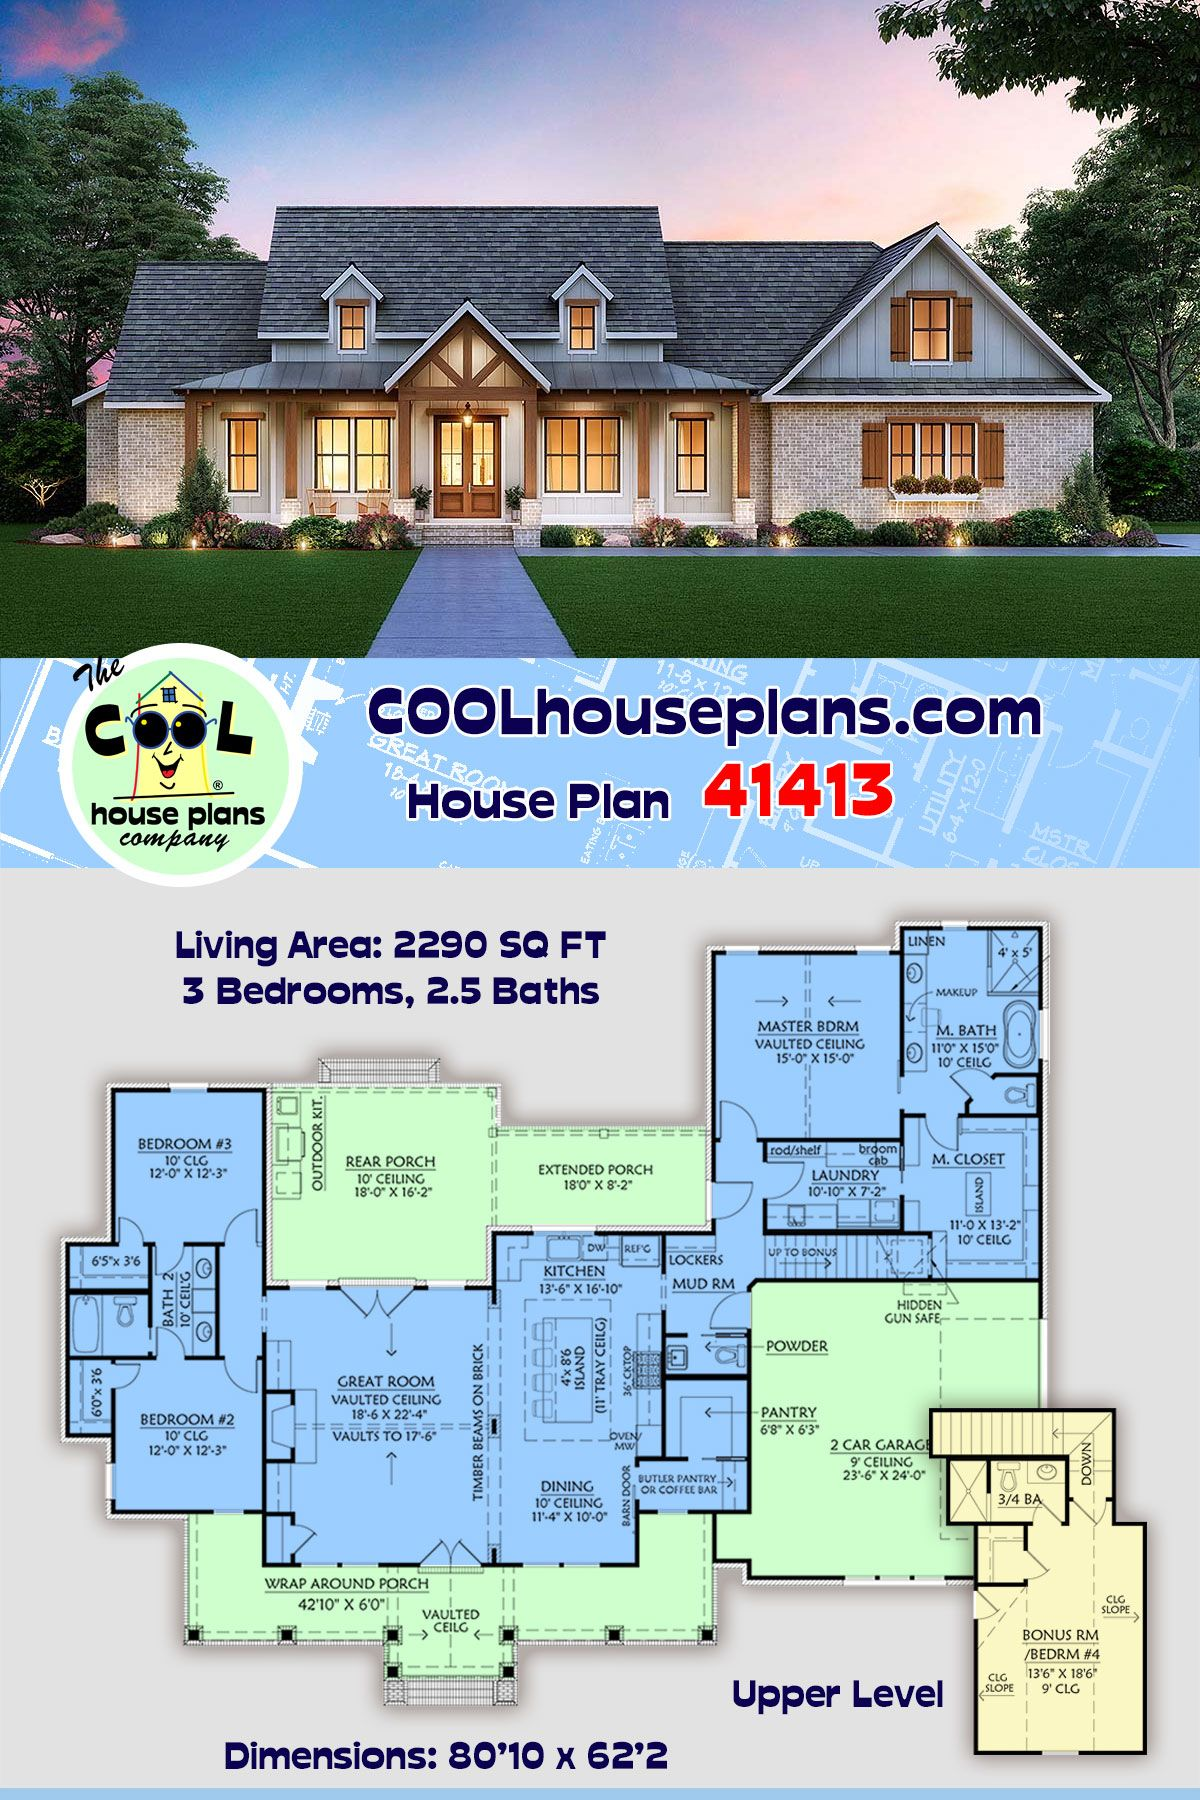 Craftsman Style House Plan 41413 With 3 Bed 3 Bath 2 Car Garage In 2020 Southern House Plans Craftsman Style House Plans Basement House Plans